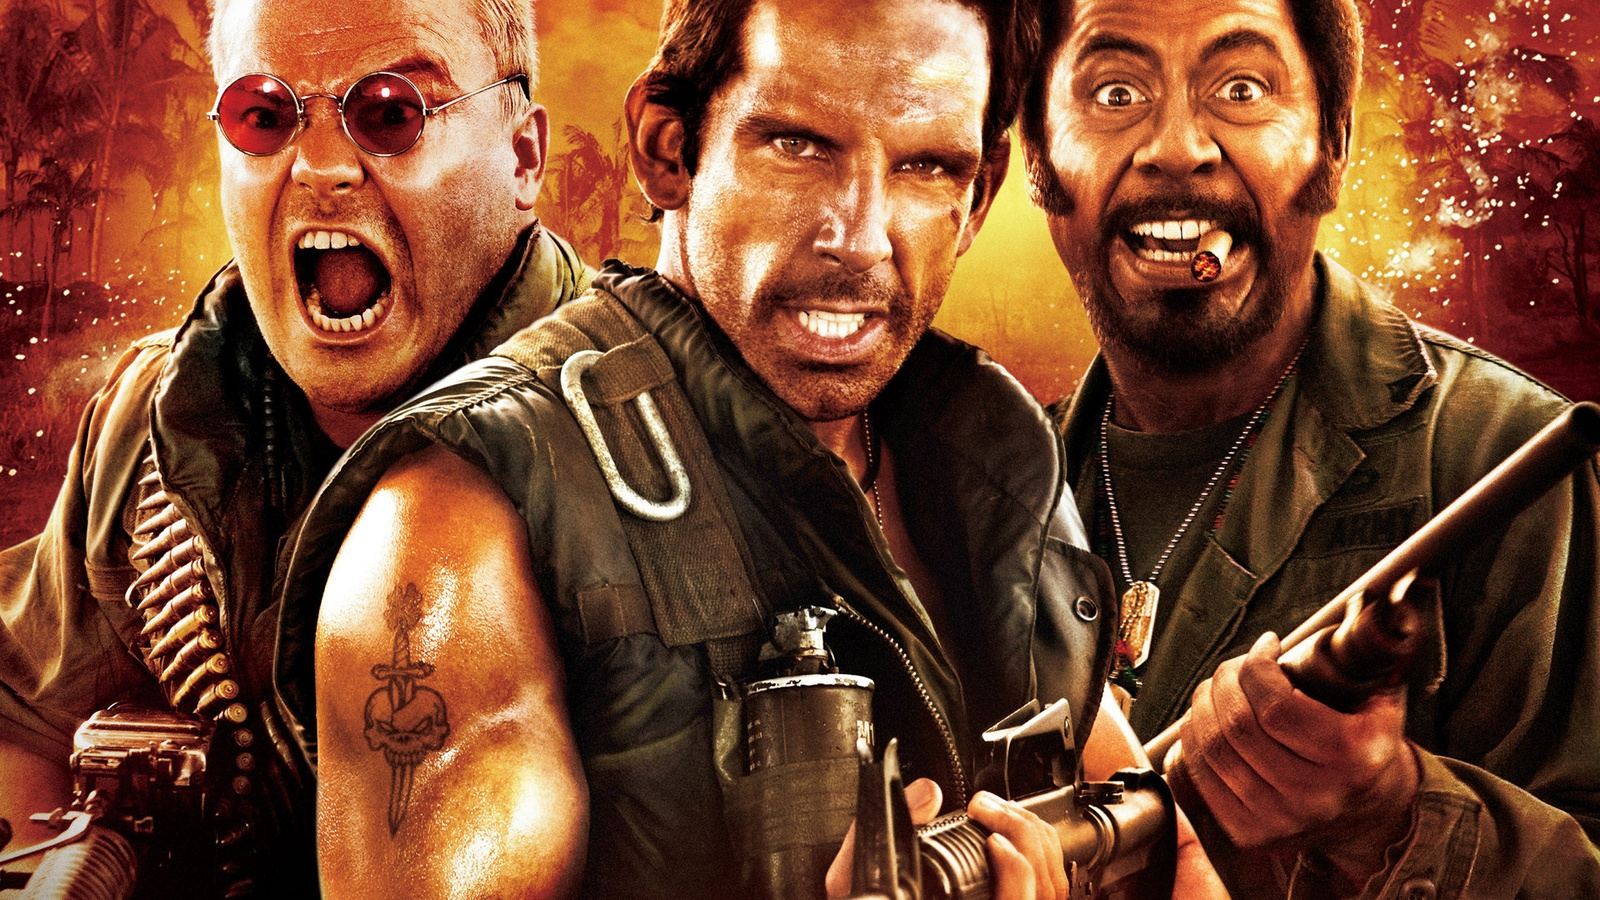 Солдаты неудачи / Tropic Thunder background